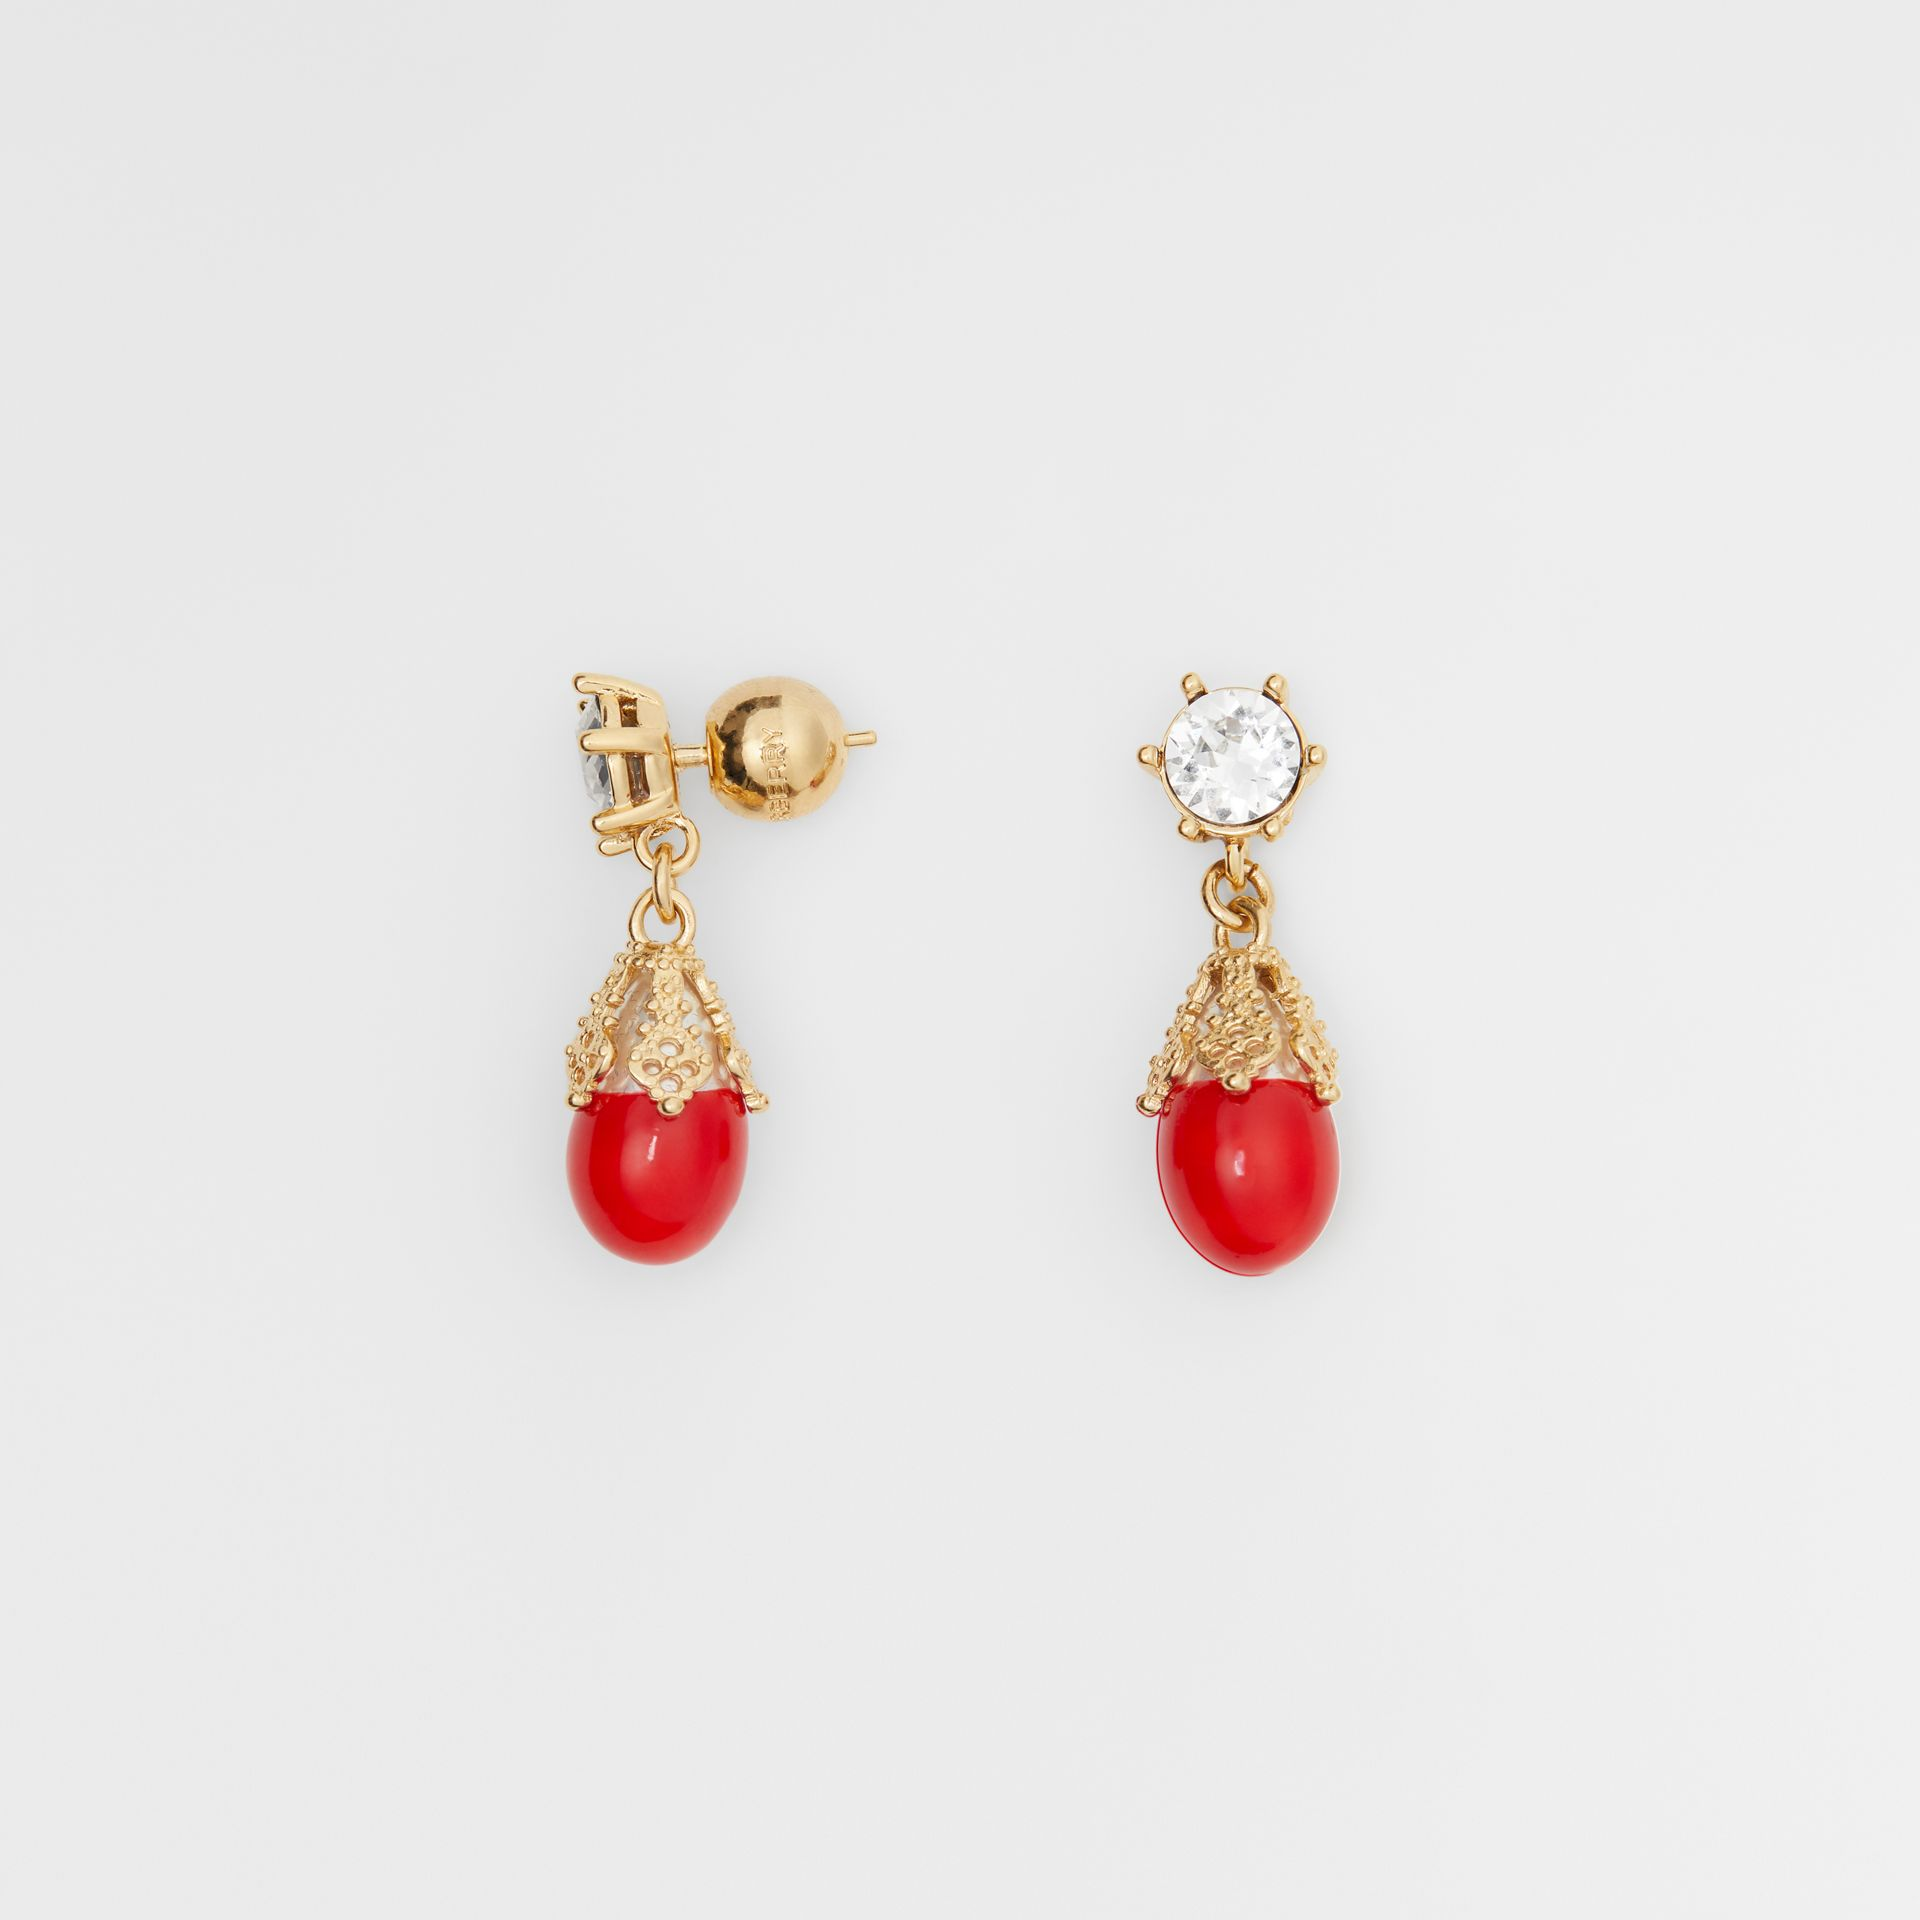 Gold-plated Faux Pearl Charm Earrings in Bright Red/light - Women | Burberry - gallery image 3